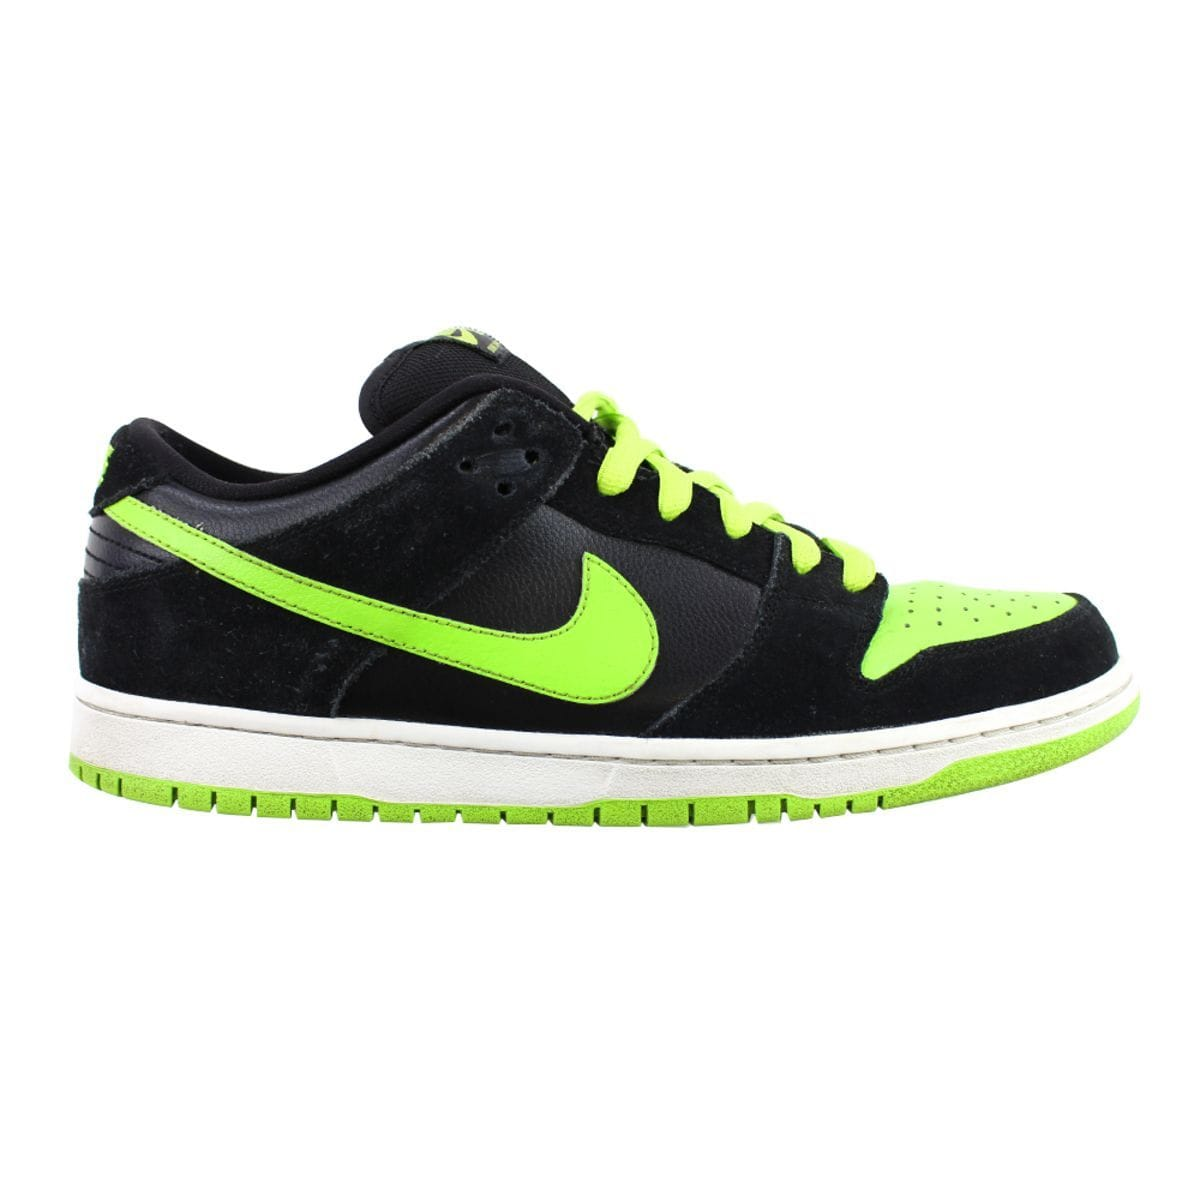 Nike Dunk SB Low Neon J Pack